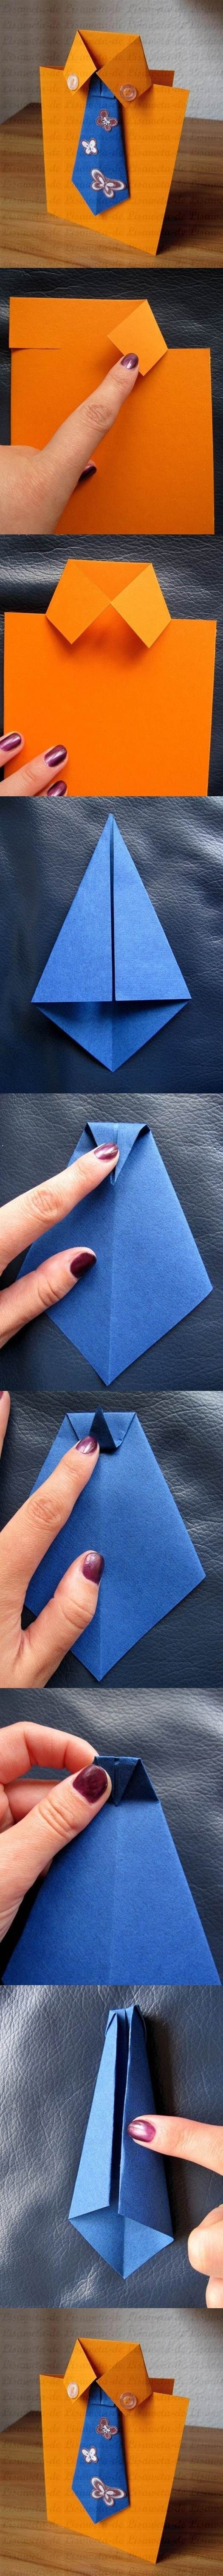 How To Make A Shirt And Tie Greeting Card Pictures, Photos, and Images for Faceb...